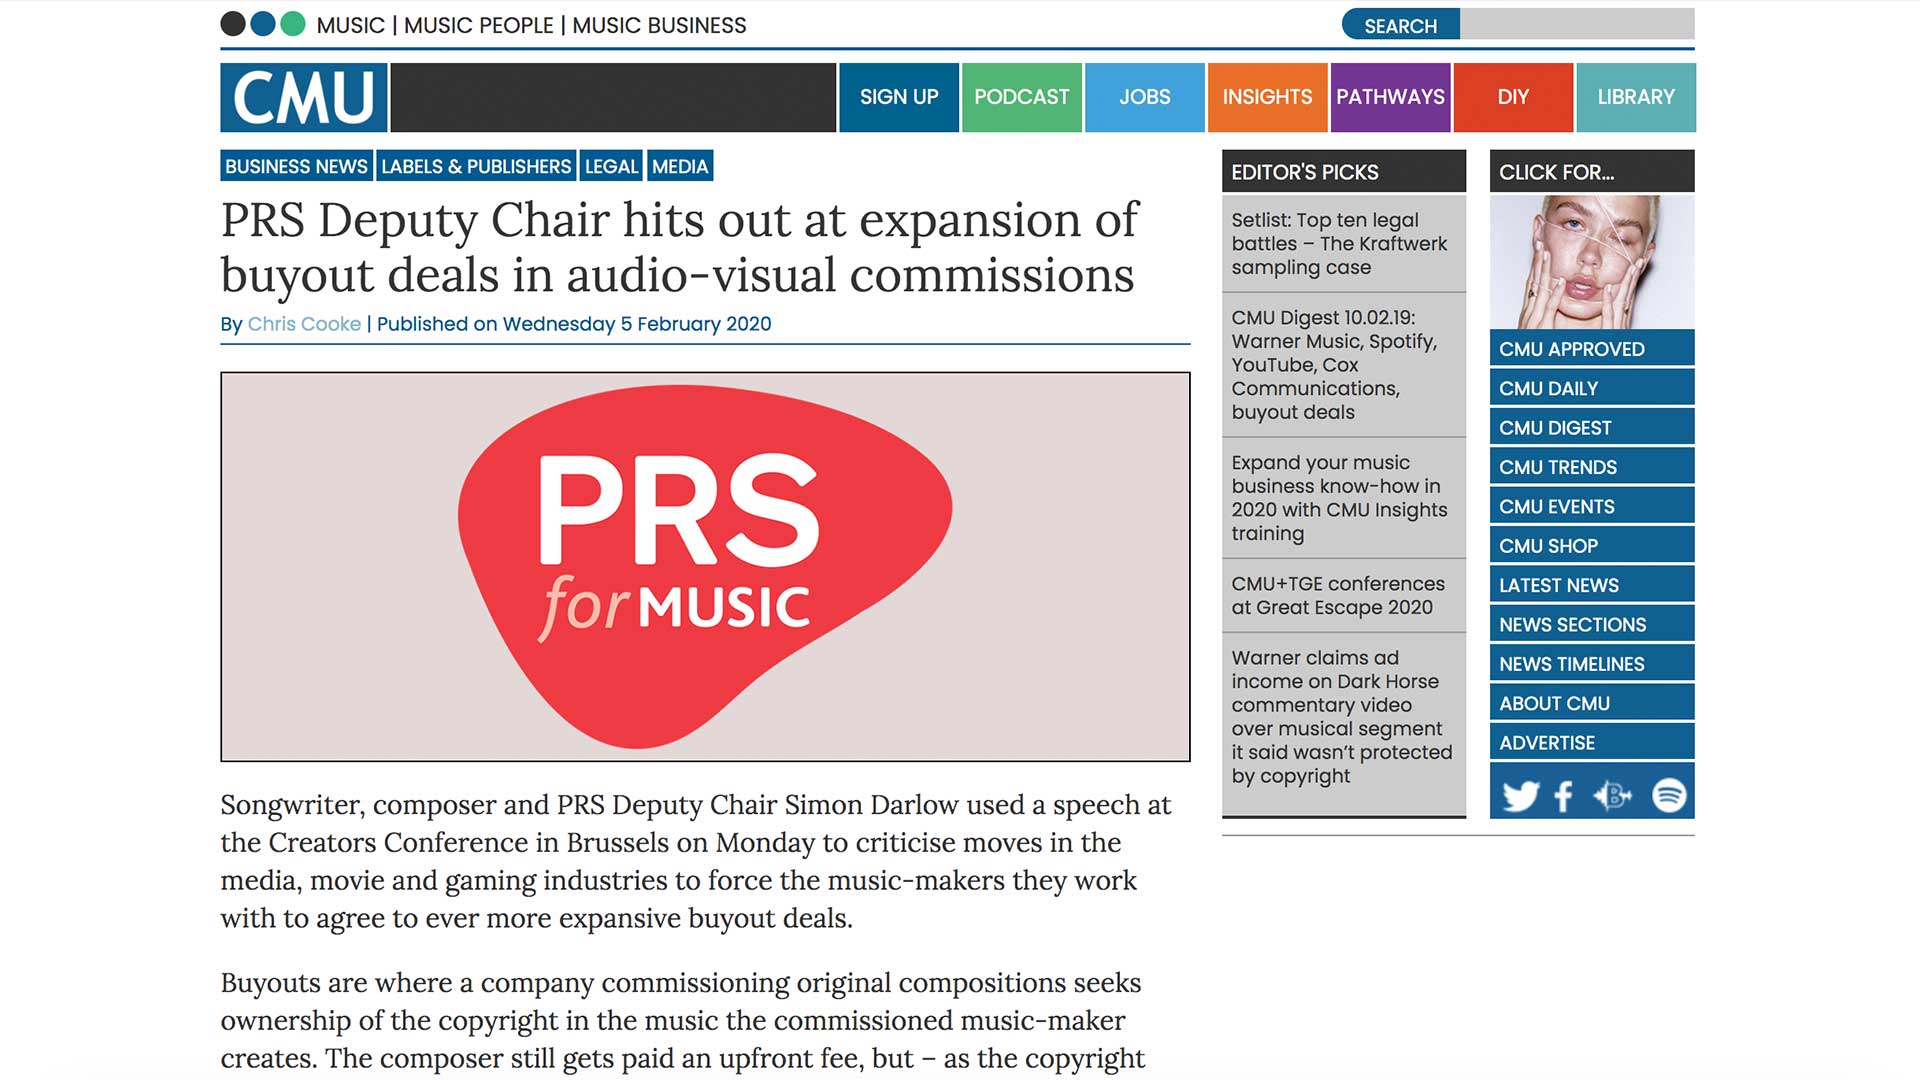 Fairness Rocks News PRS Deputy Chair hits out at expansion of buyout deals in audio-visual commissions